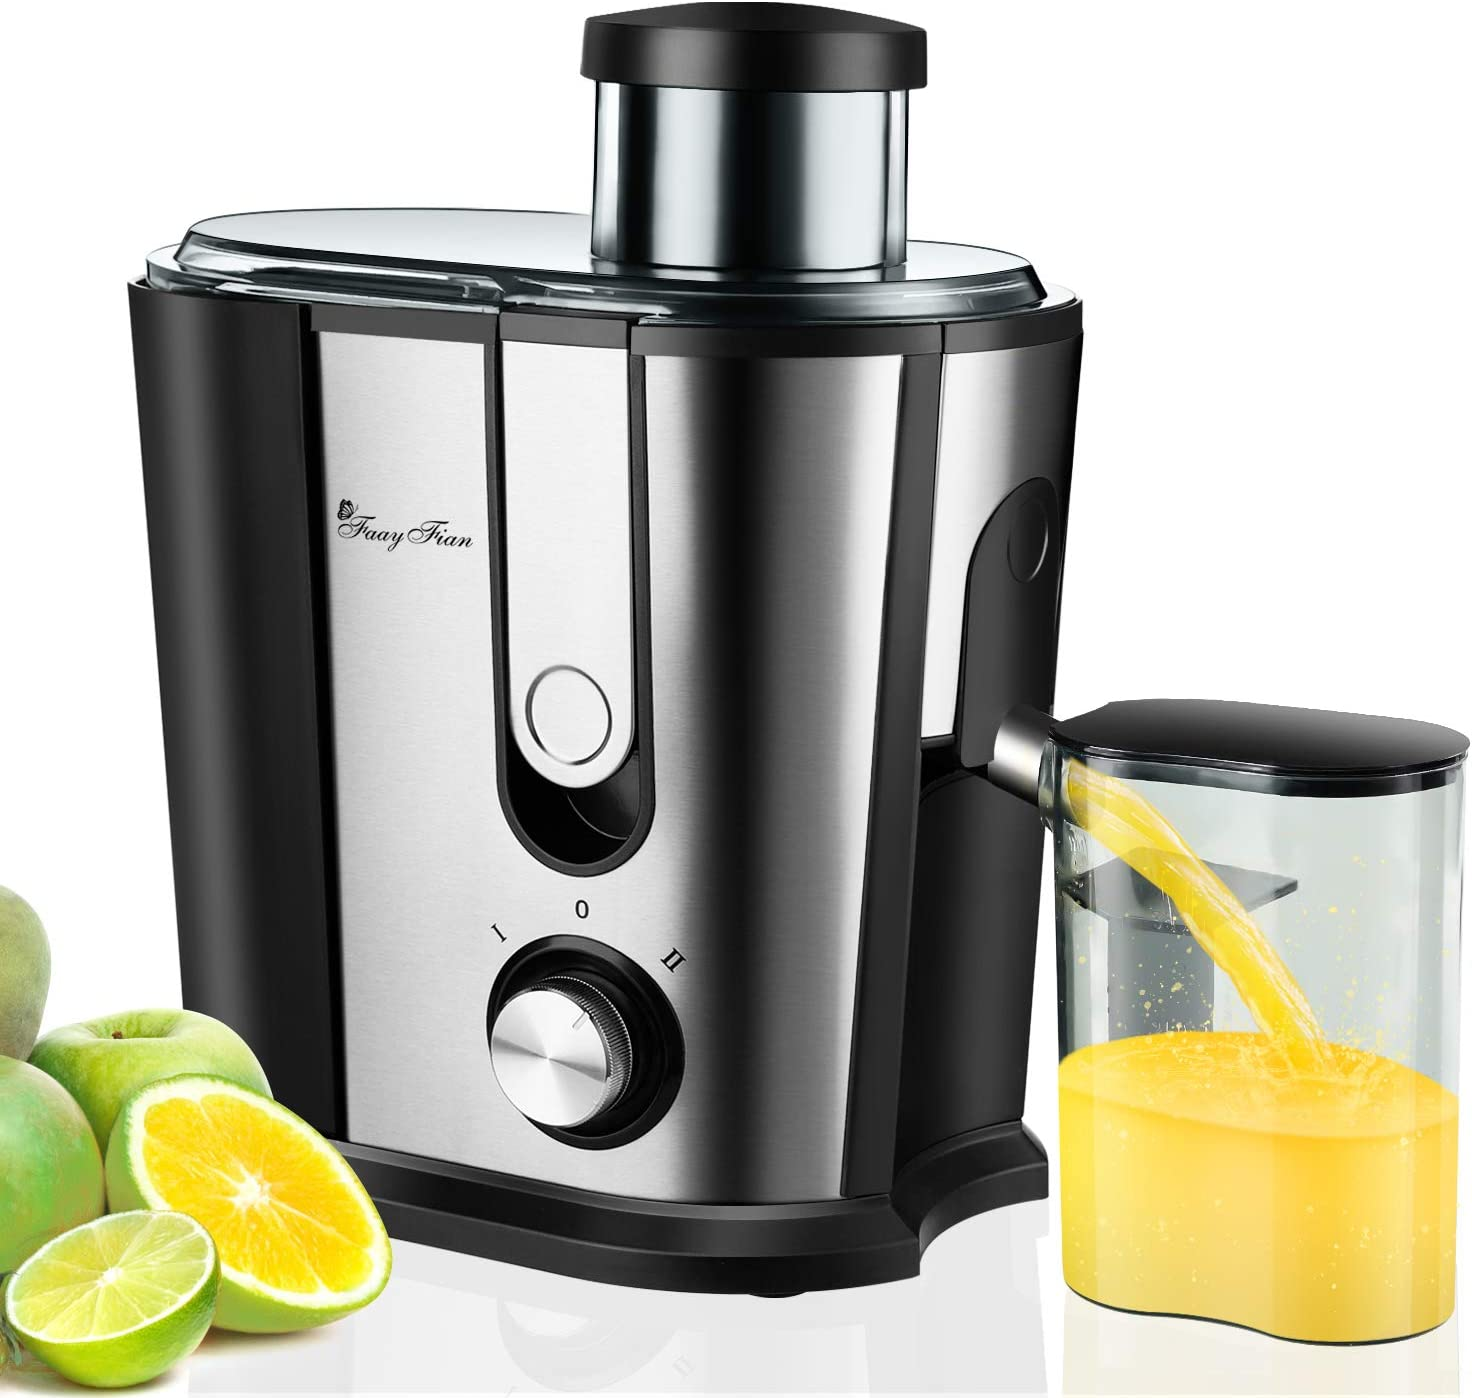 Juicer Machine Compact Juice Extractor, Quick Juice High Yield, Detachable Easy Clean Juice Maker, 3'' Wide Mouth, Dual-Speed, Overheat Protect, Stainless Steel Centrifugal Juicer for Fruit Vegetable